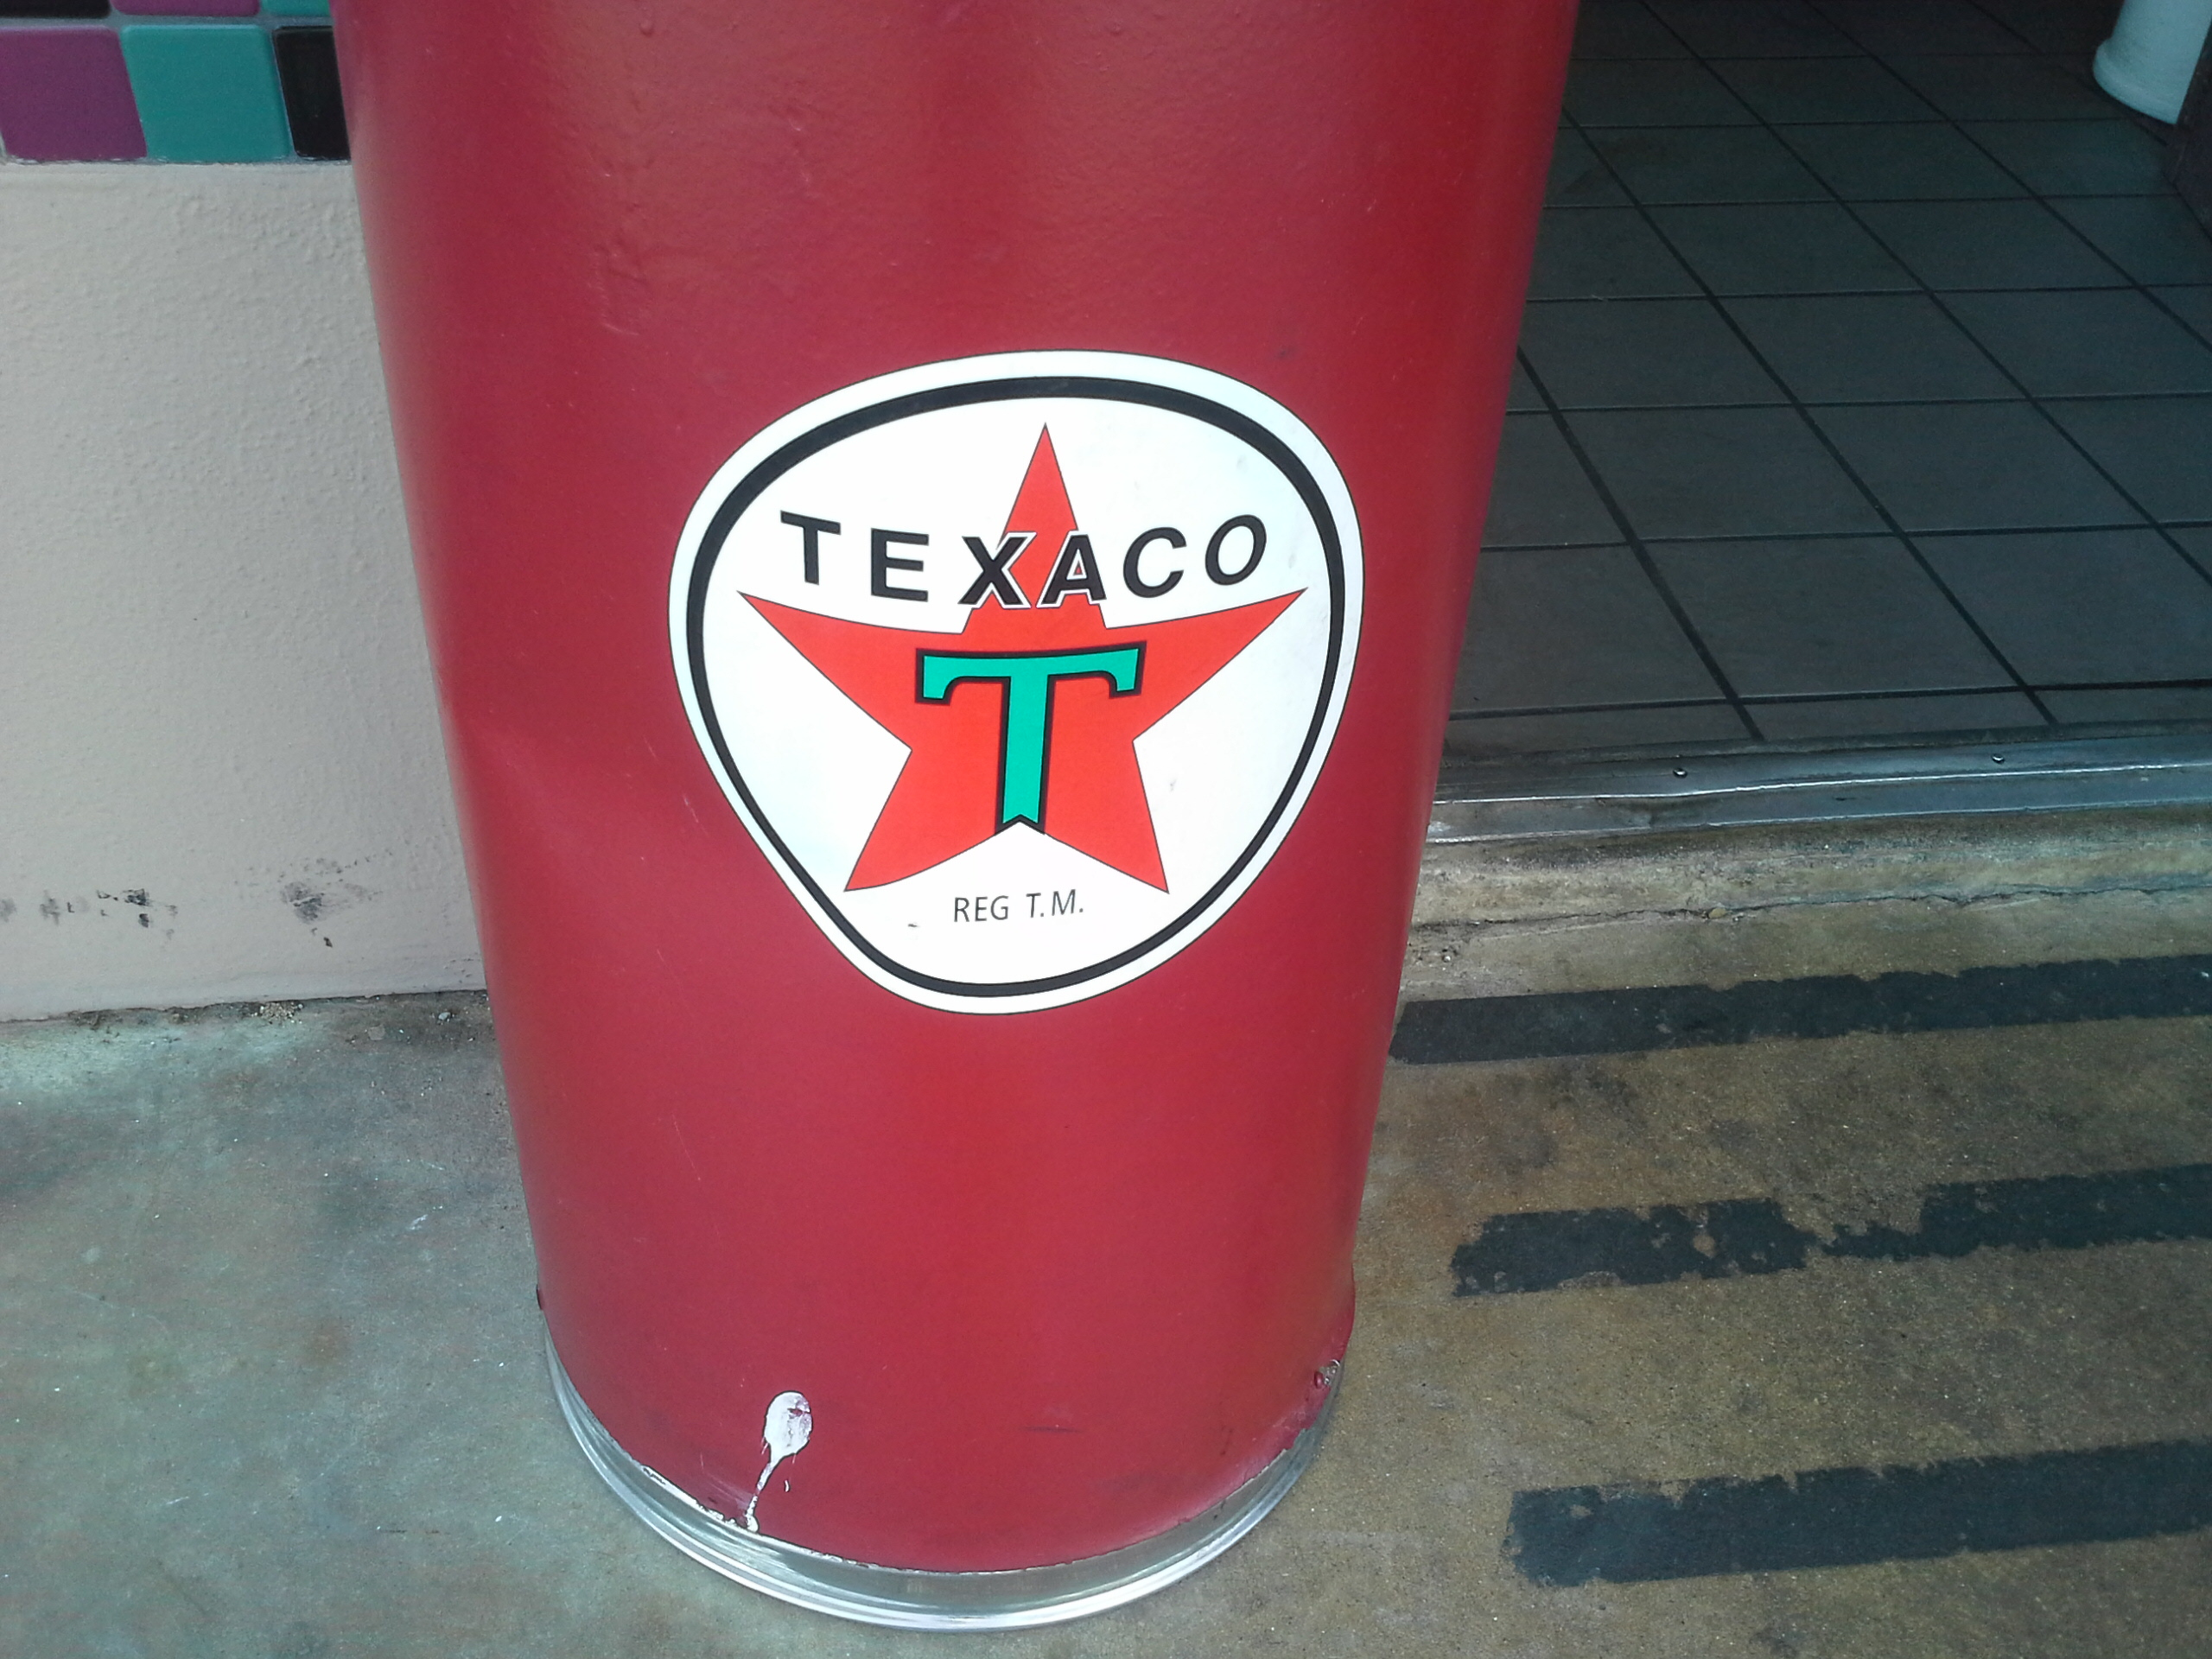 Tarrytown Texaco image 6